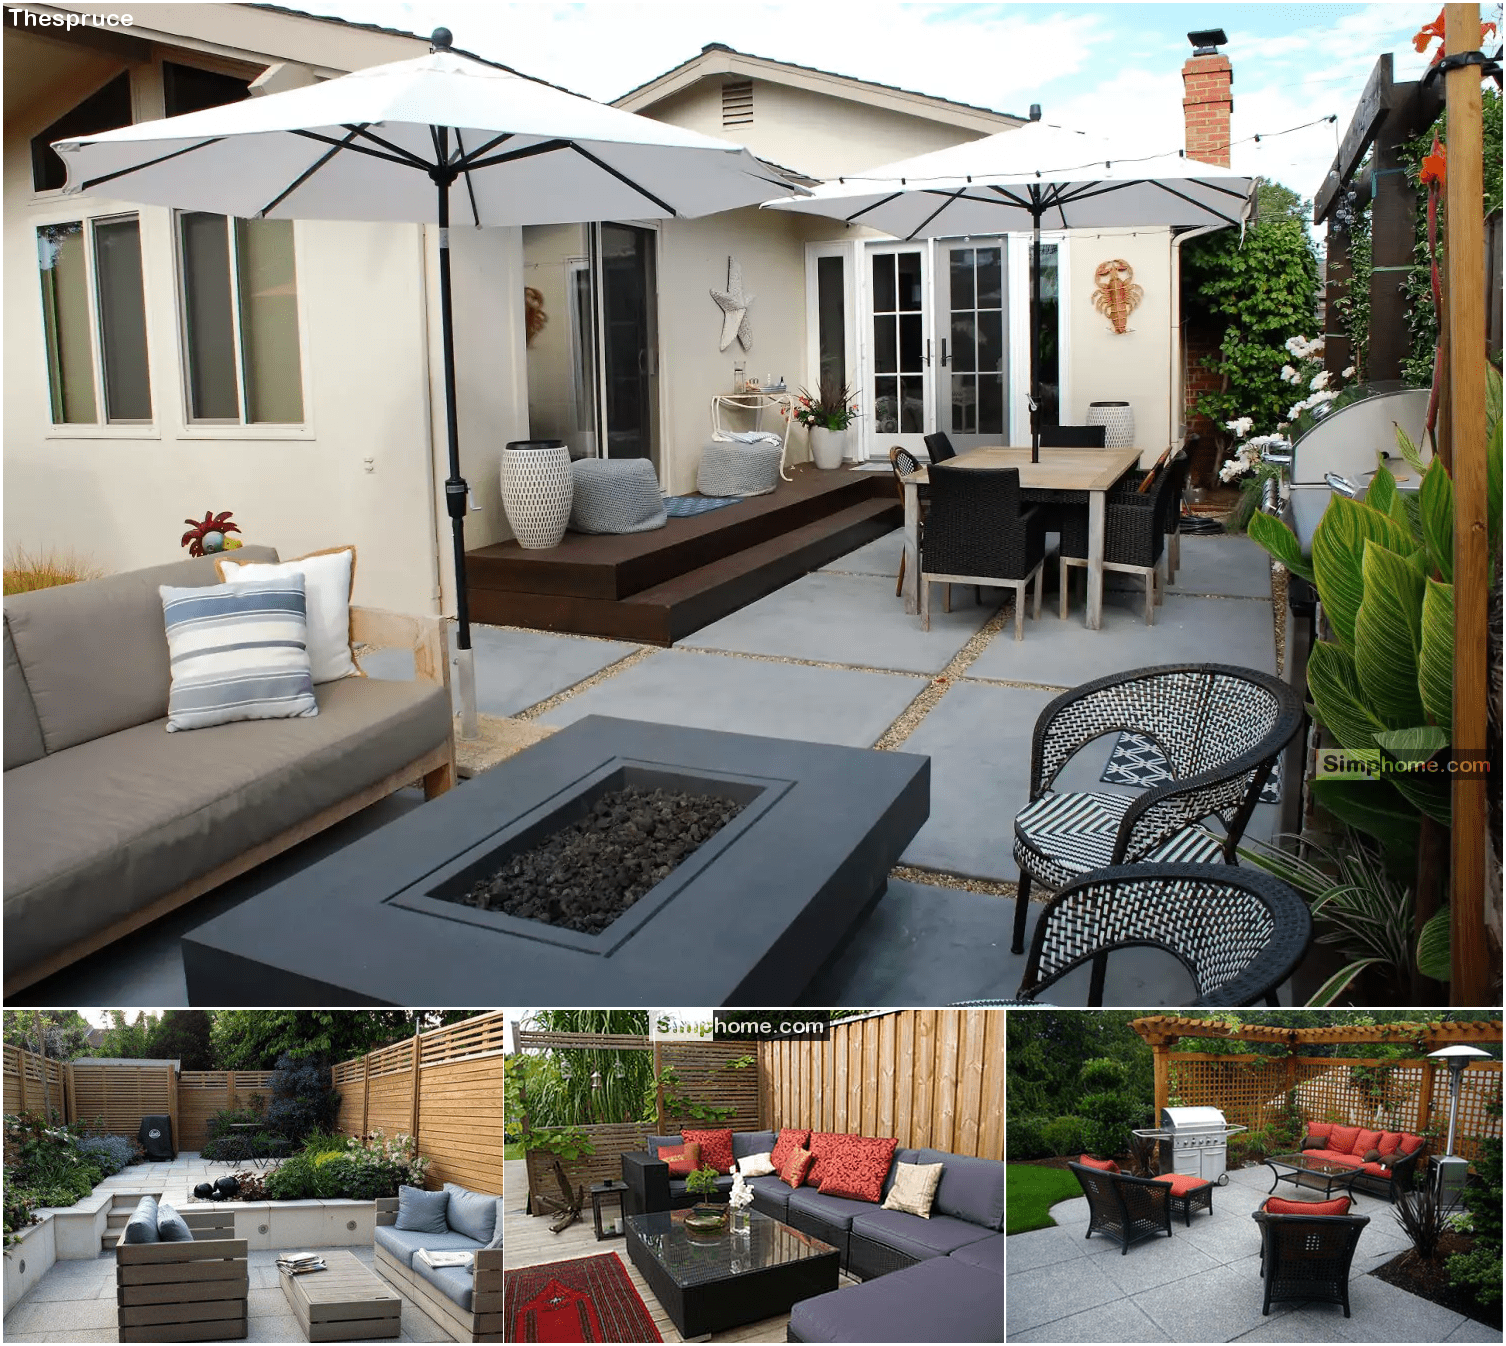 1.Stylish and Low Maintenance backyard Landscaping Ideas via Simphome.com